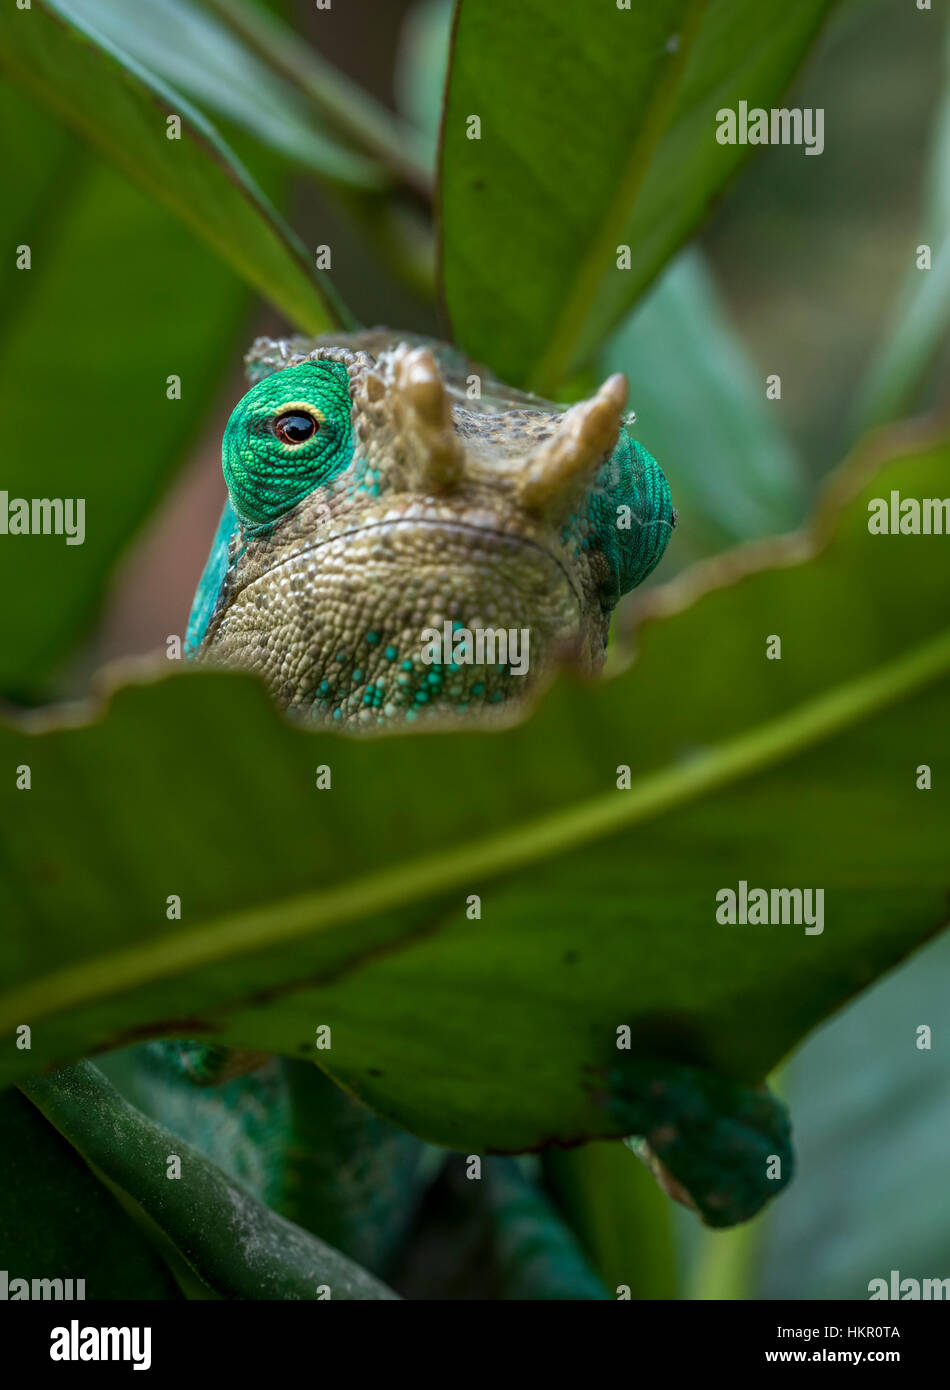 A Chameleon in rainforest of Madagascar , Andasibe Reserve. - Stock Image